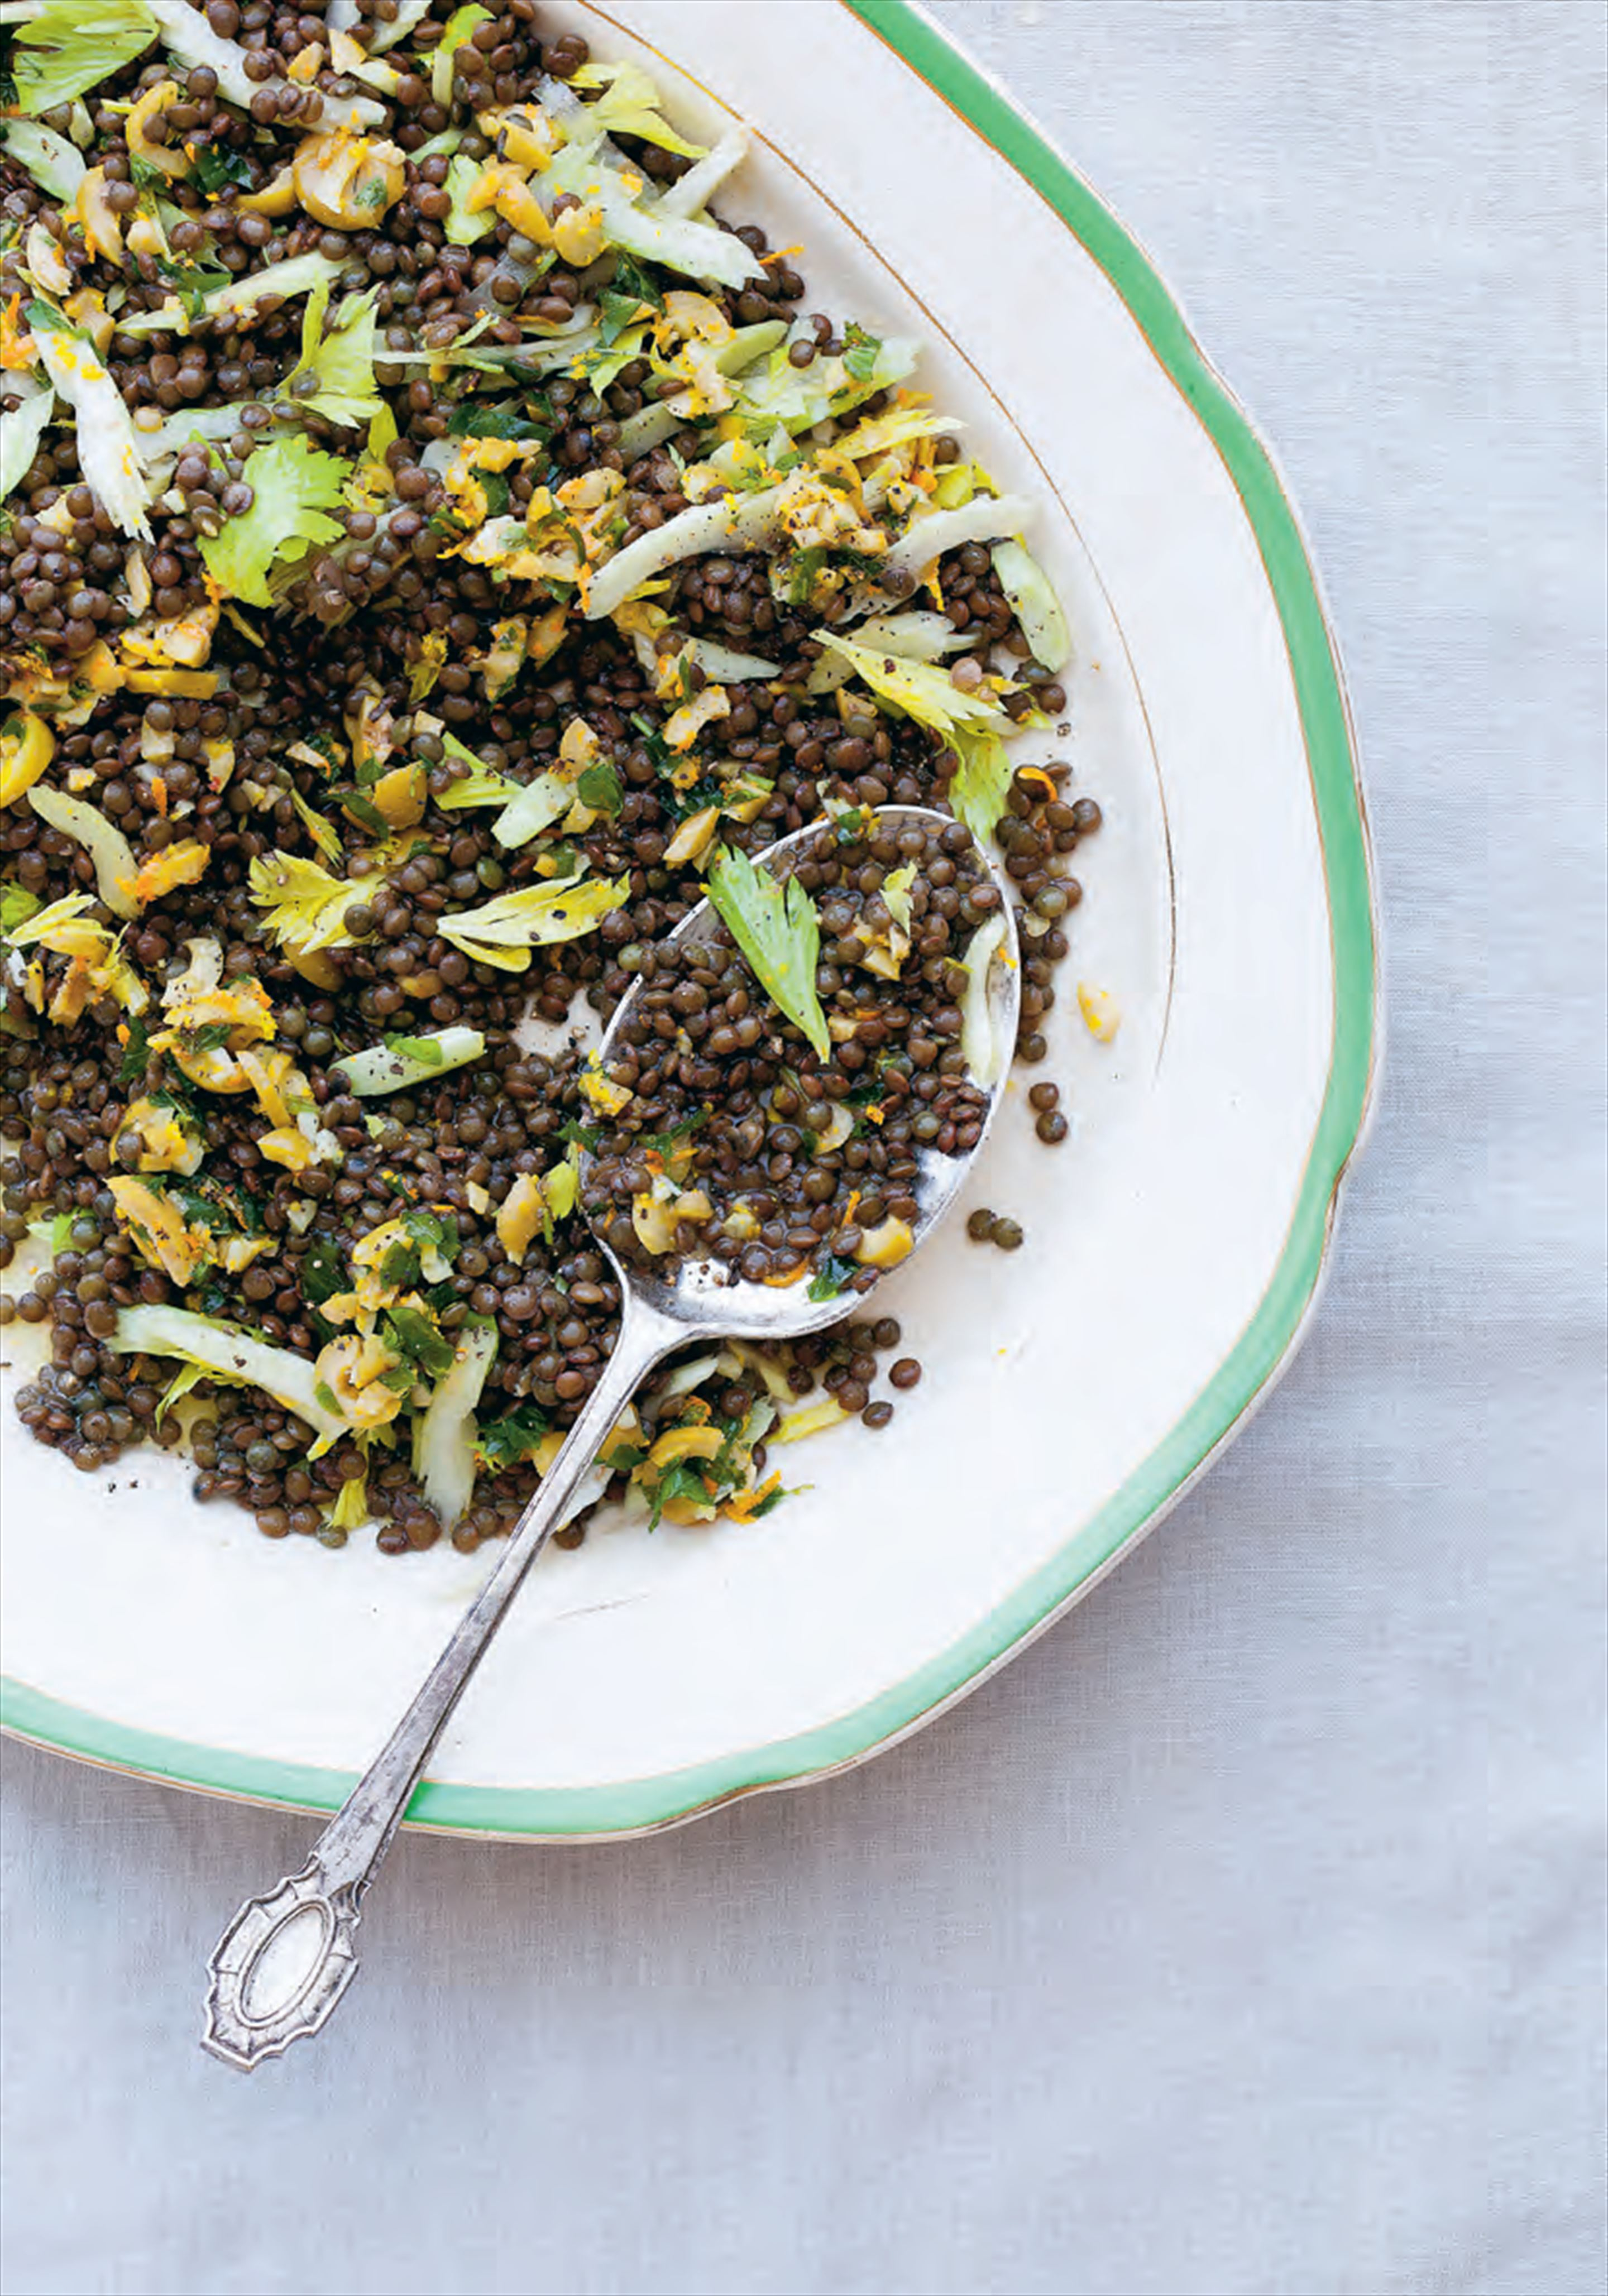 Lentils with green olives, celery leaf, mint and orange